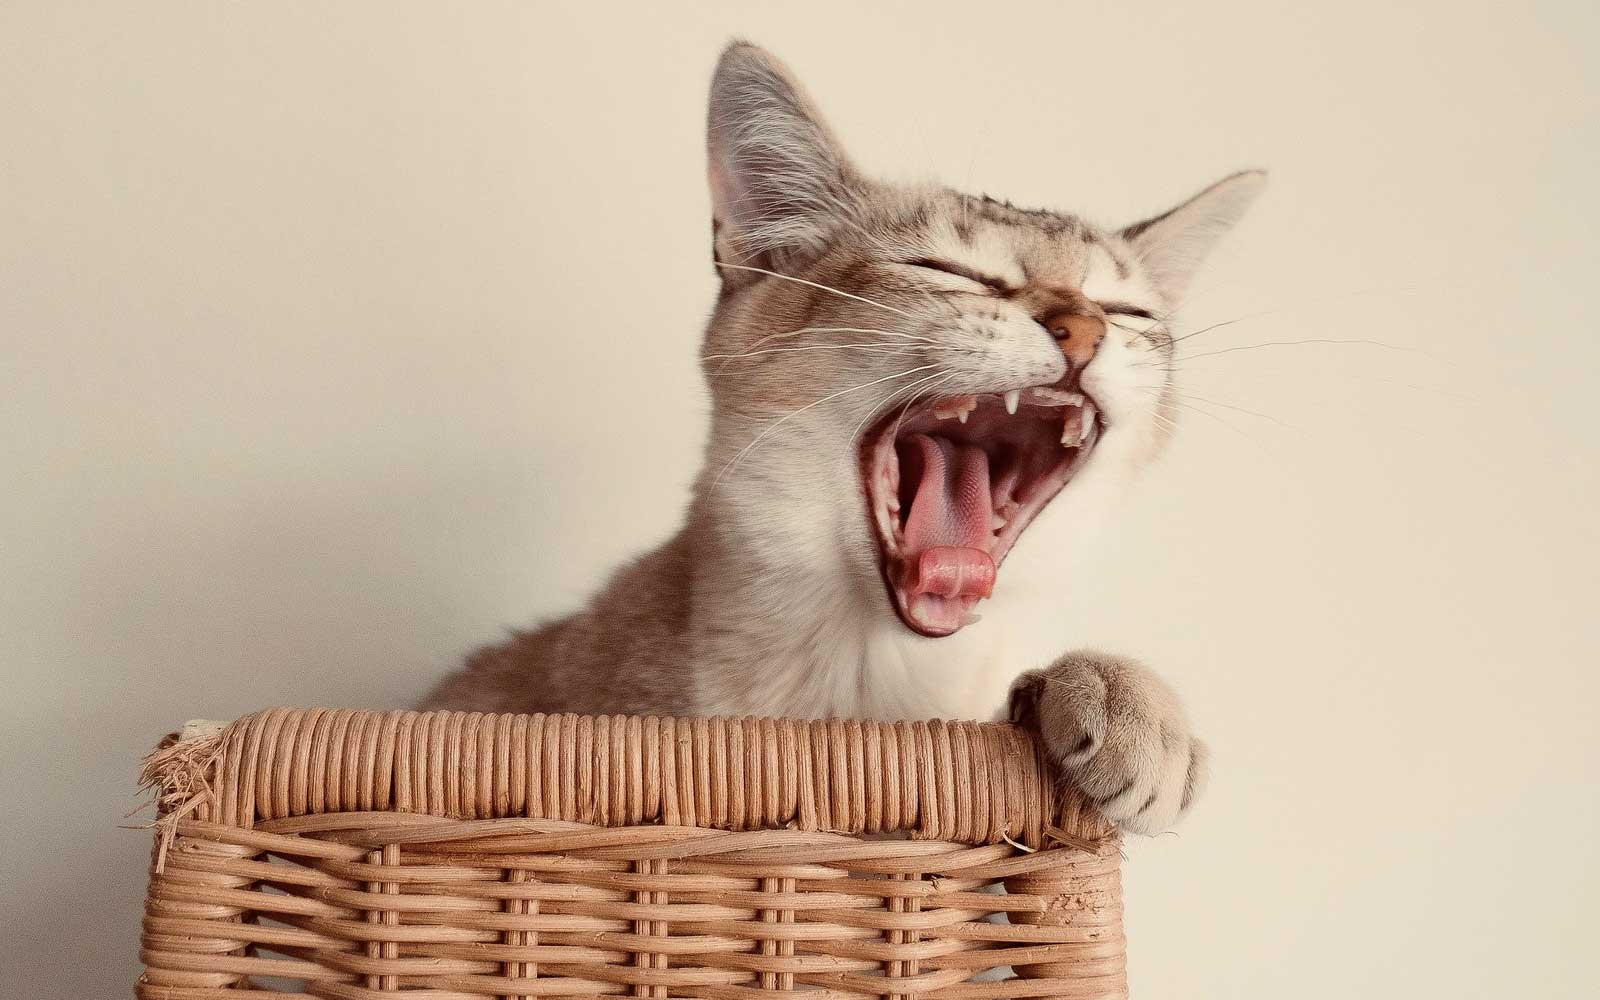 bored cat yawning in the house